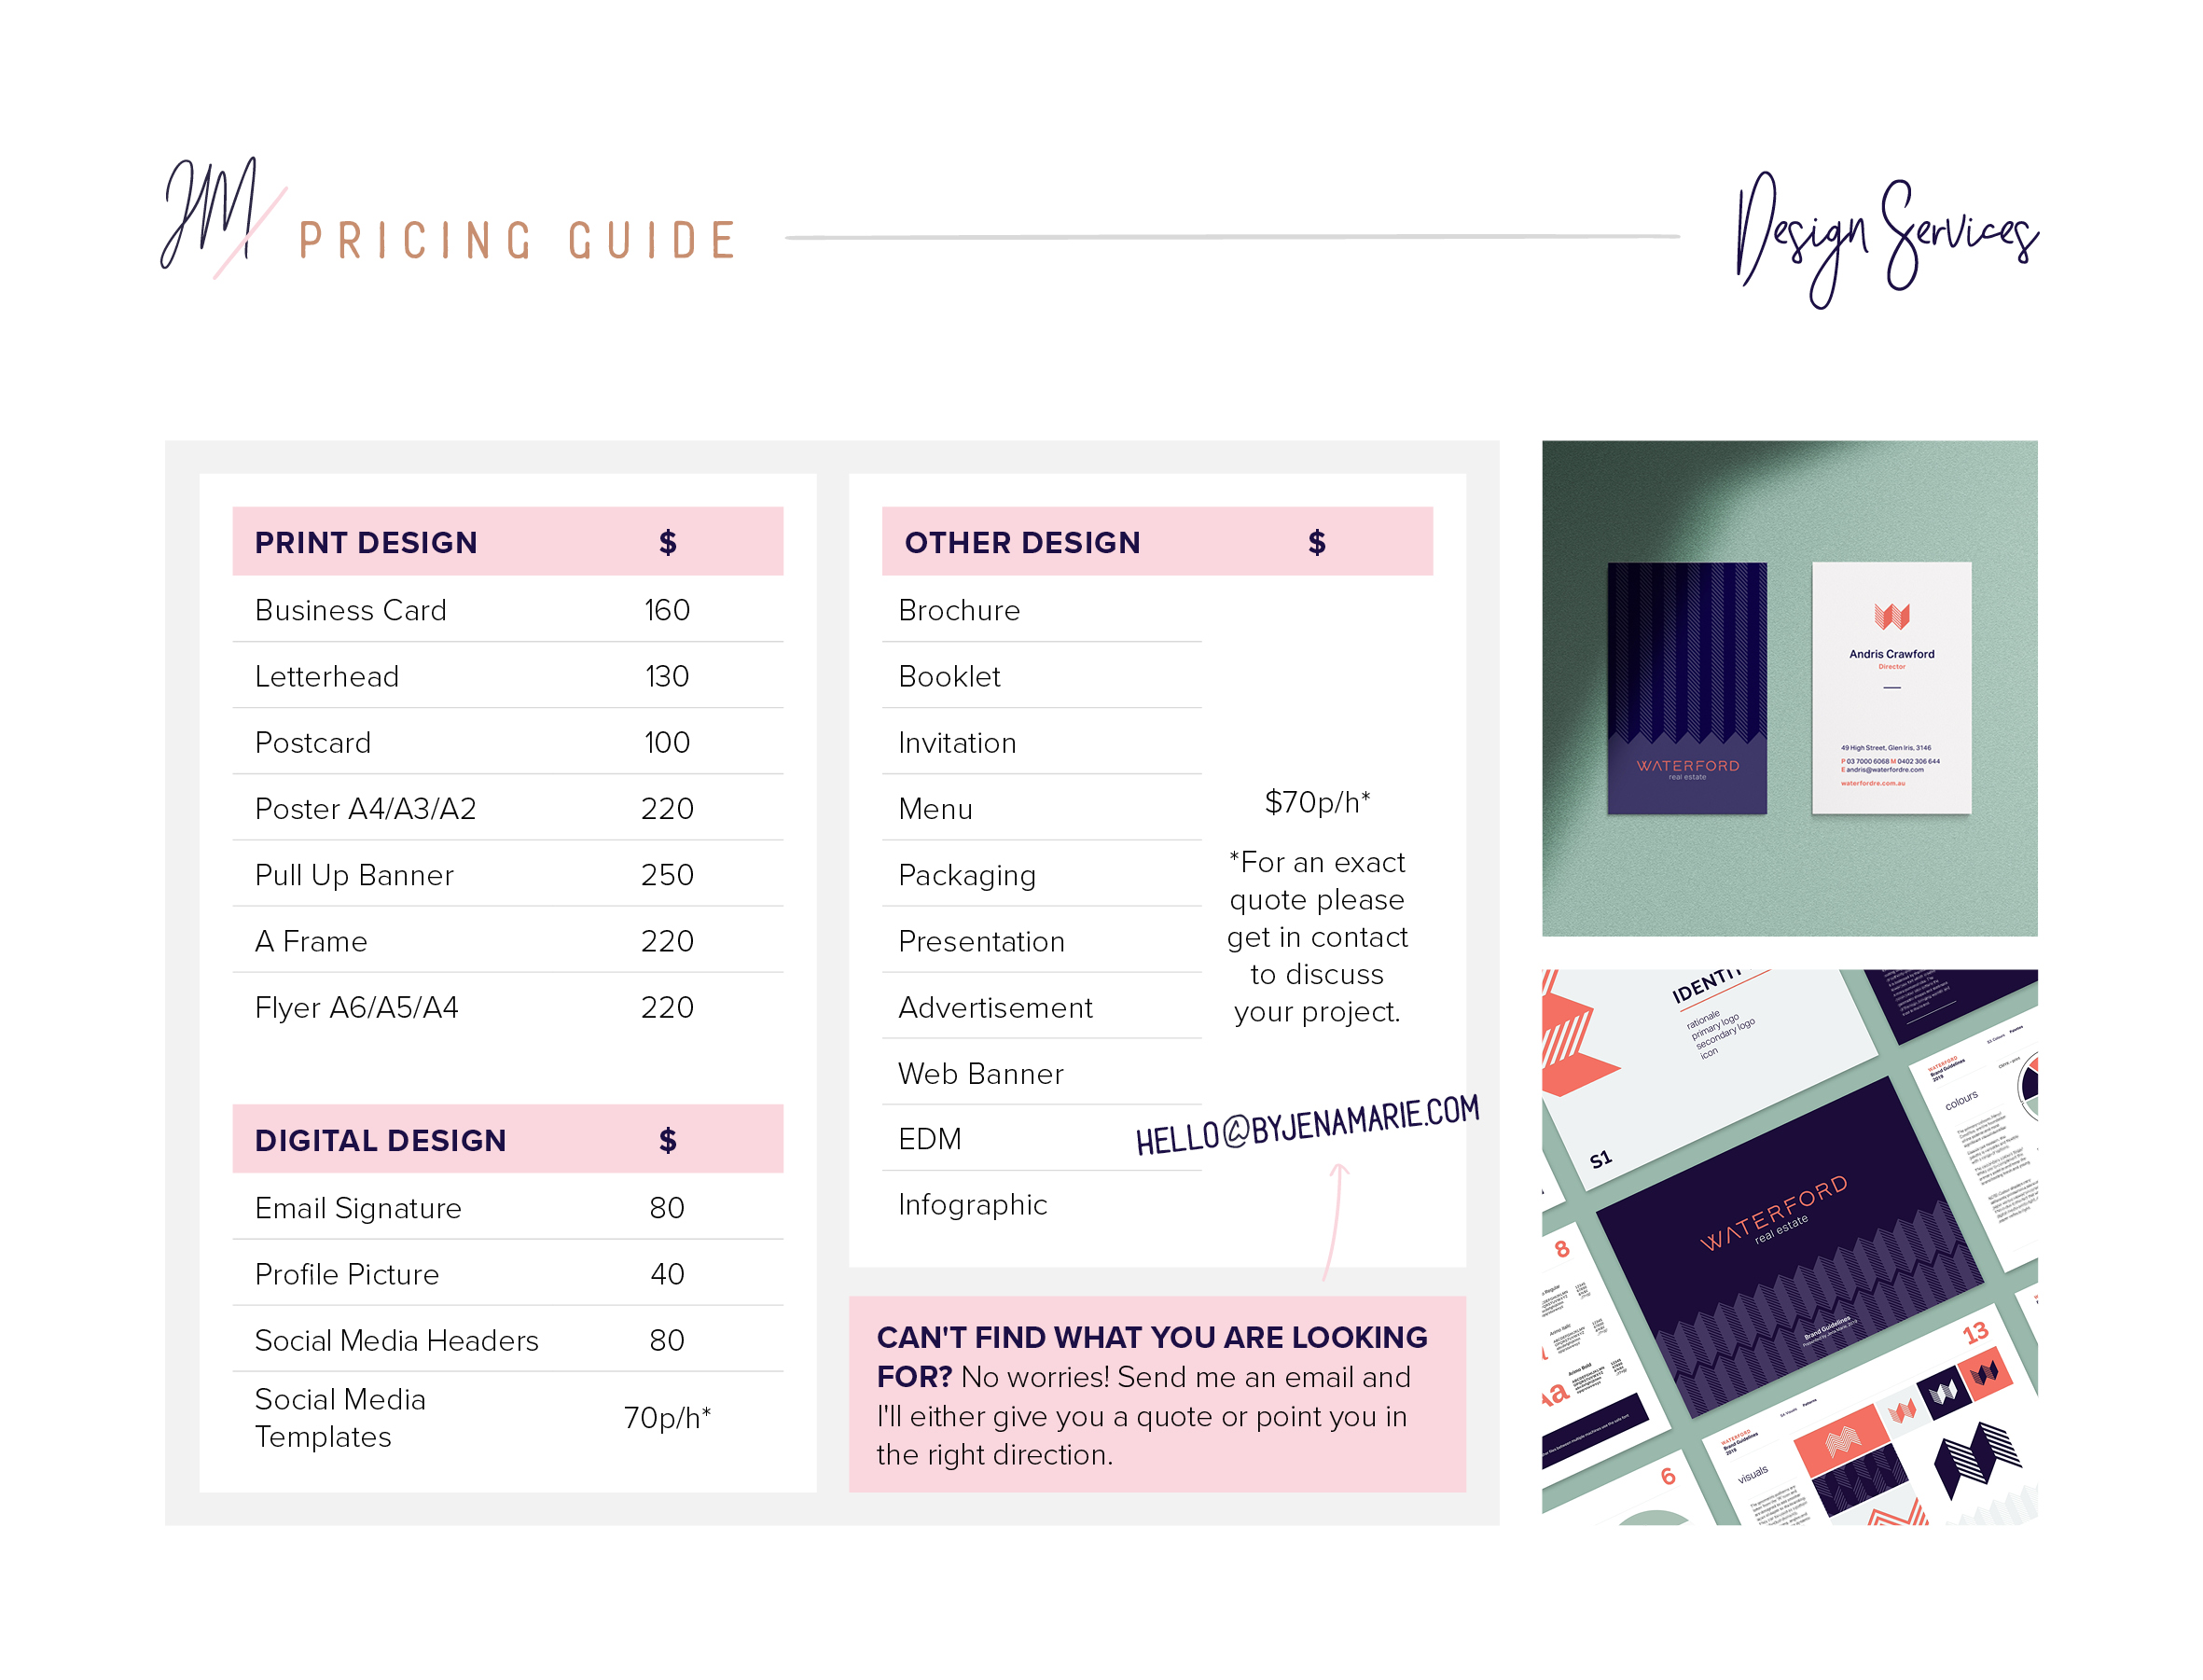 Pricing Guide - Click to view